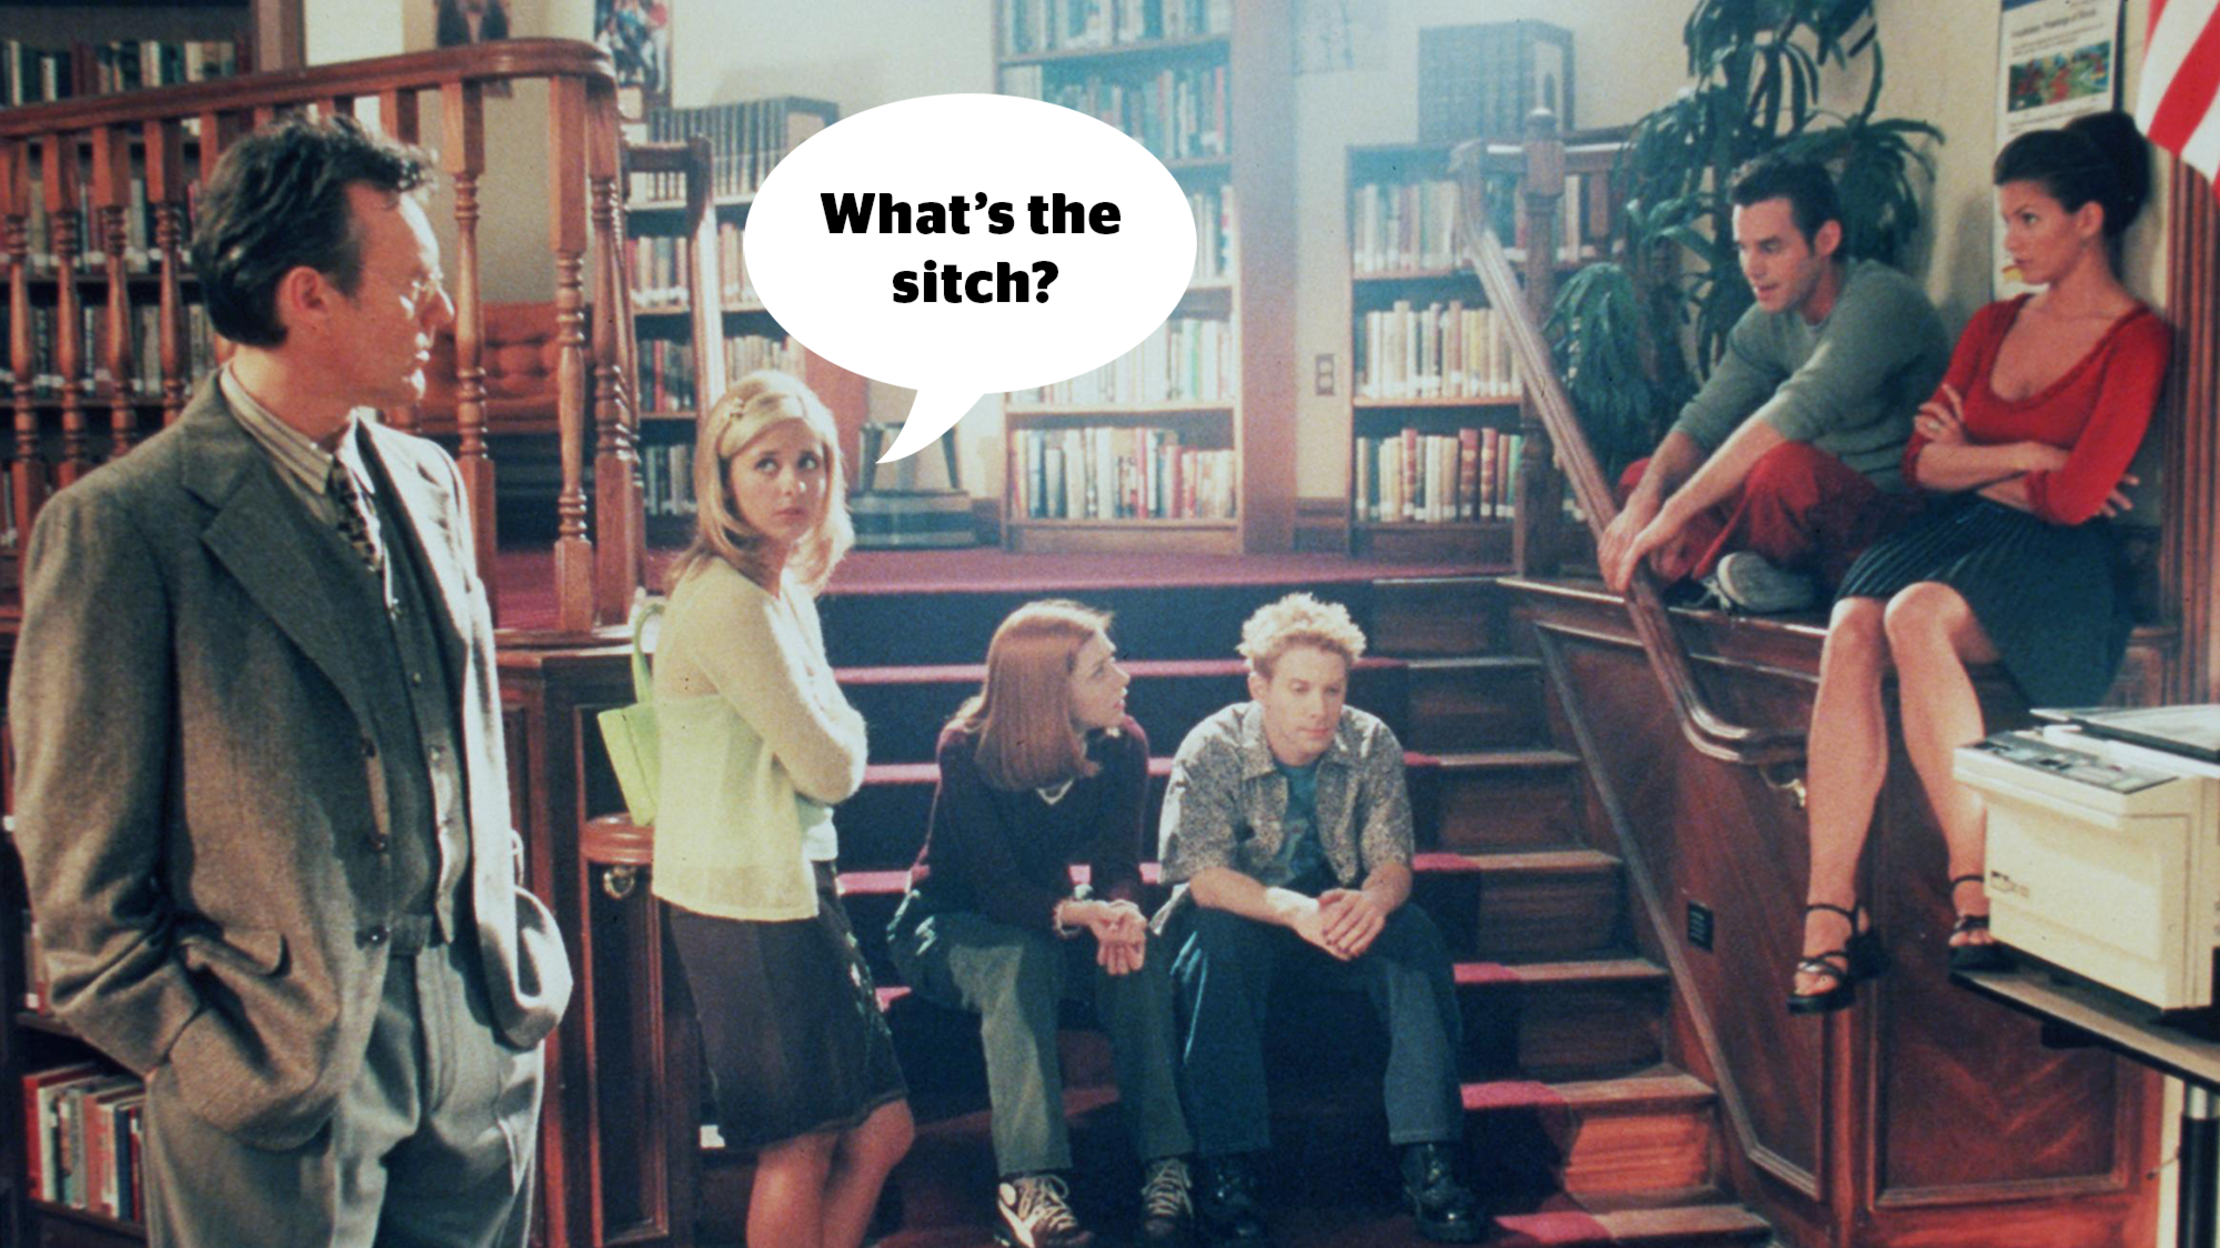 10 Pointy Pieces of Slayer Slang from 'Buffy the Vampire Slayer'